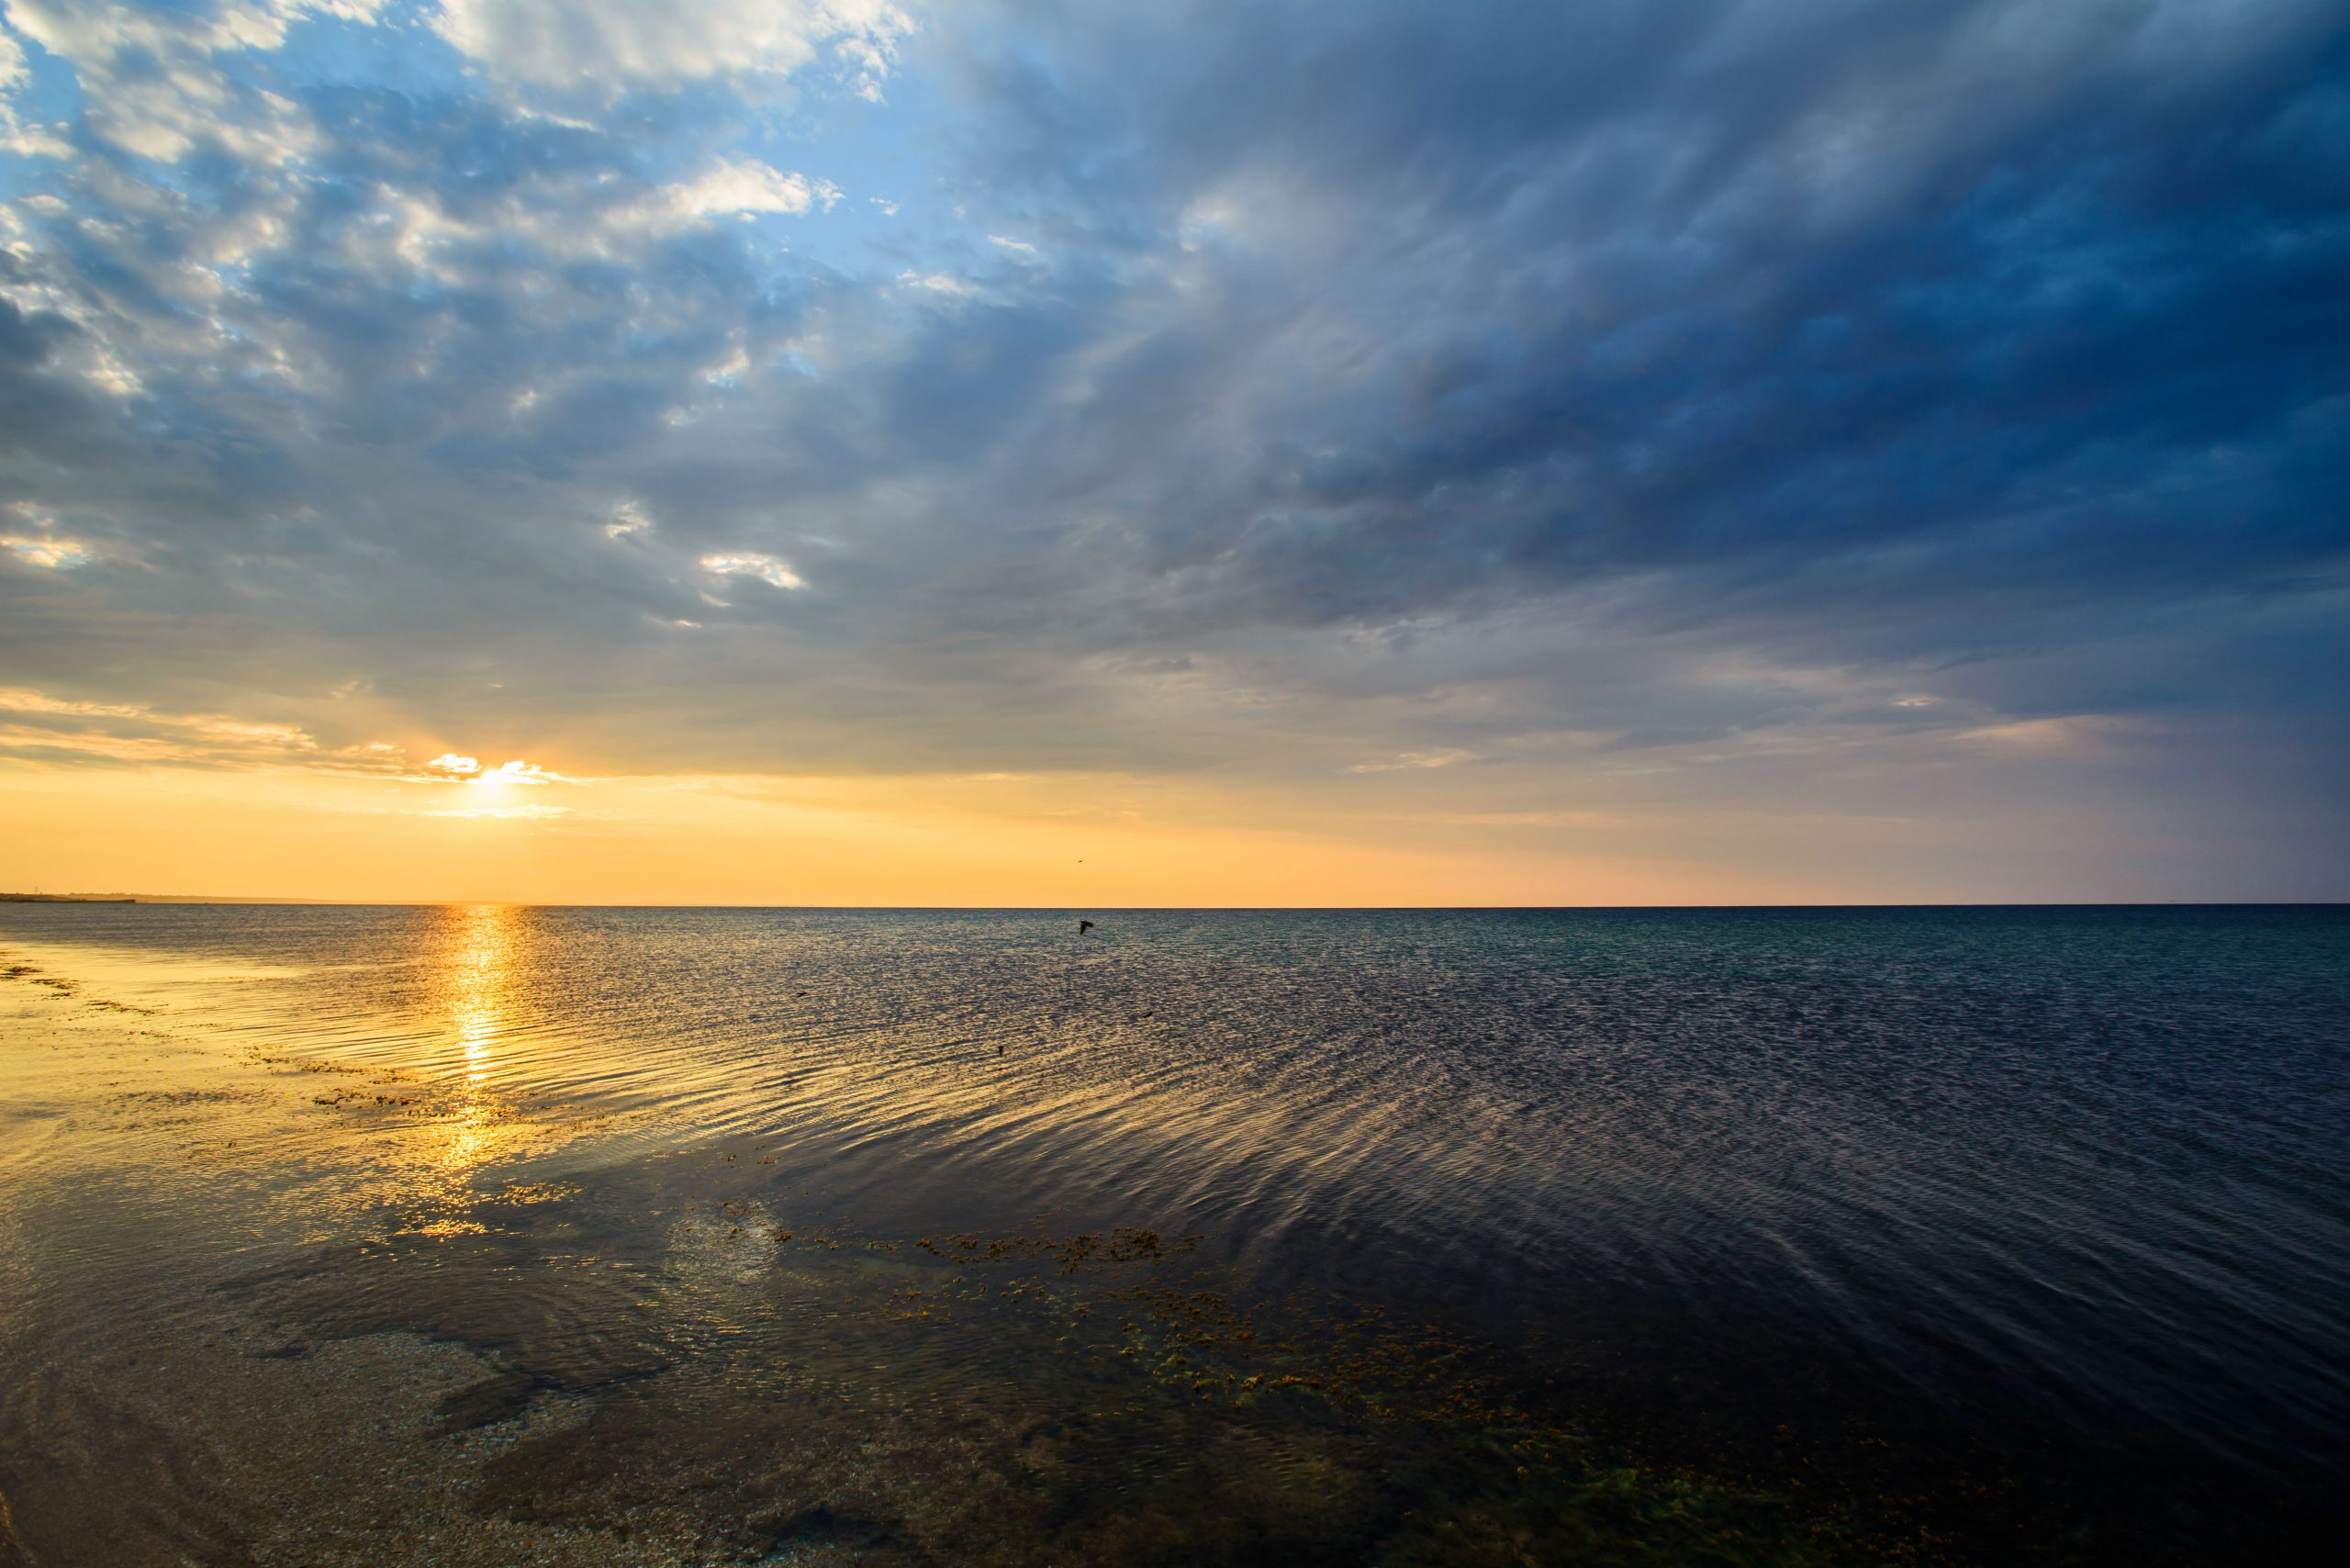 The picturesque sunset over the black sea, beautiful clouds